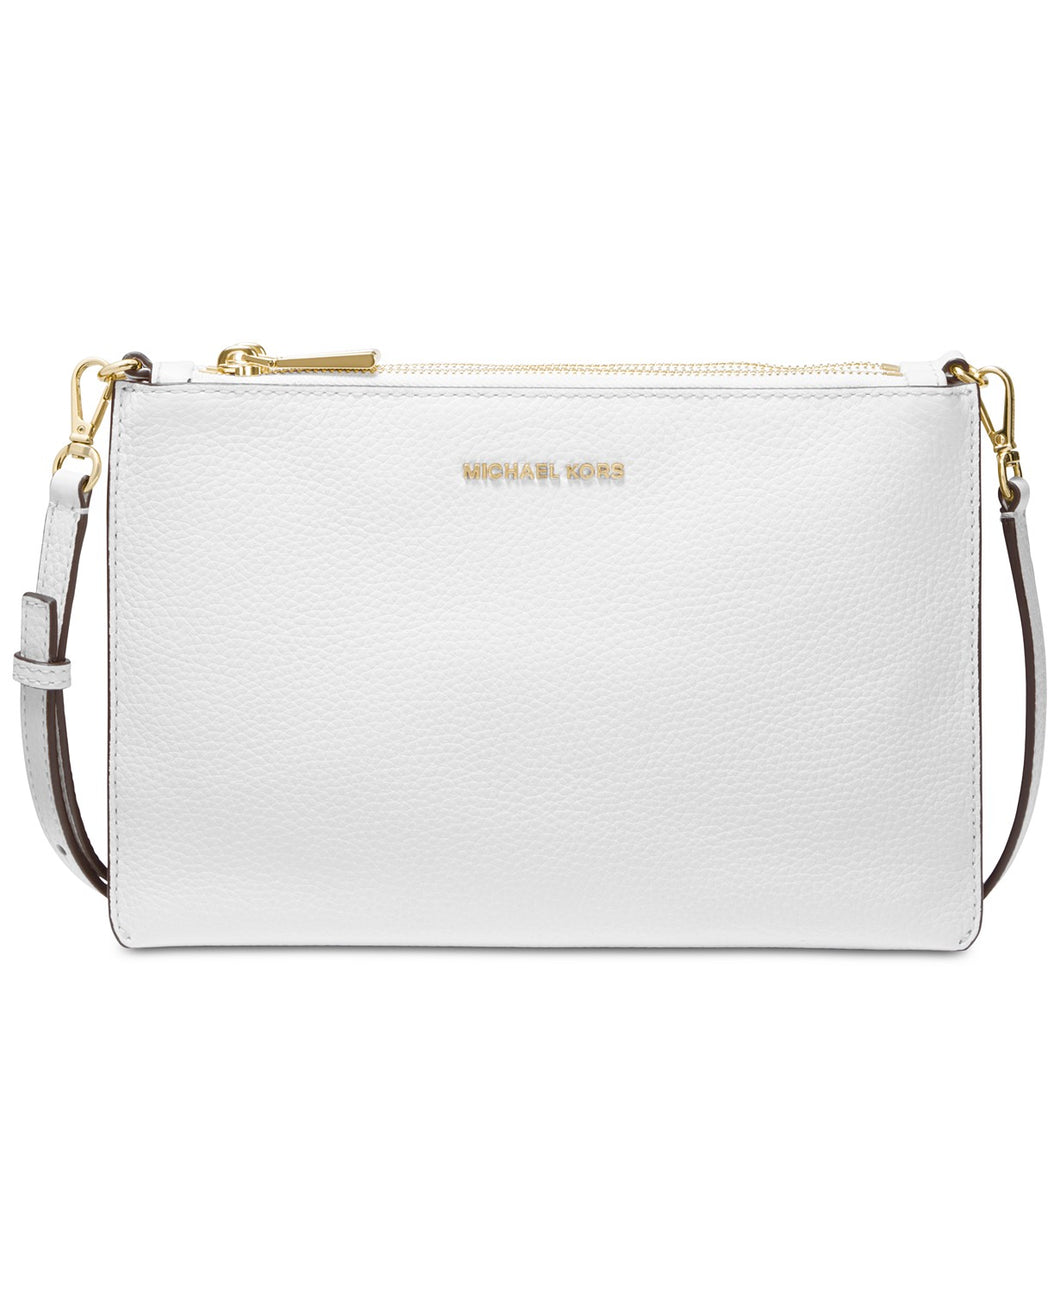 MICHAEL KORS - Pebble Leather Double Pouch Crossbody (Optic White)